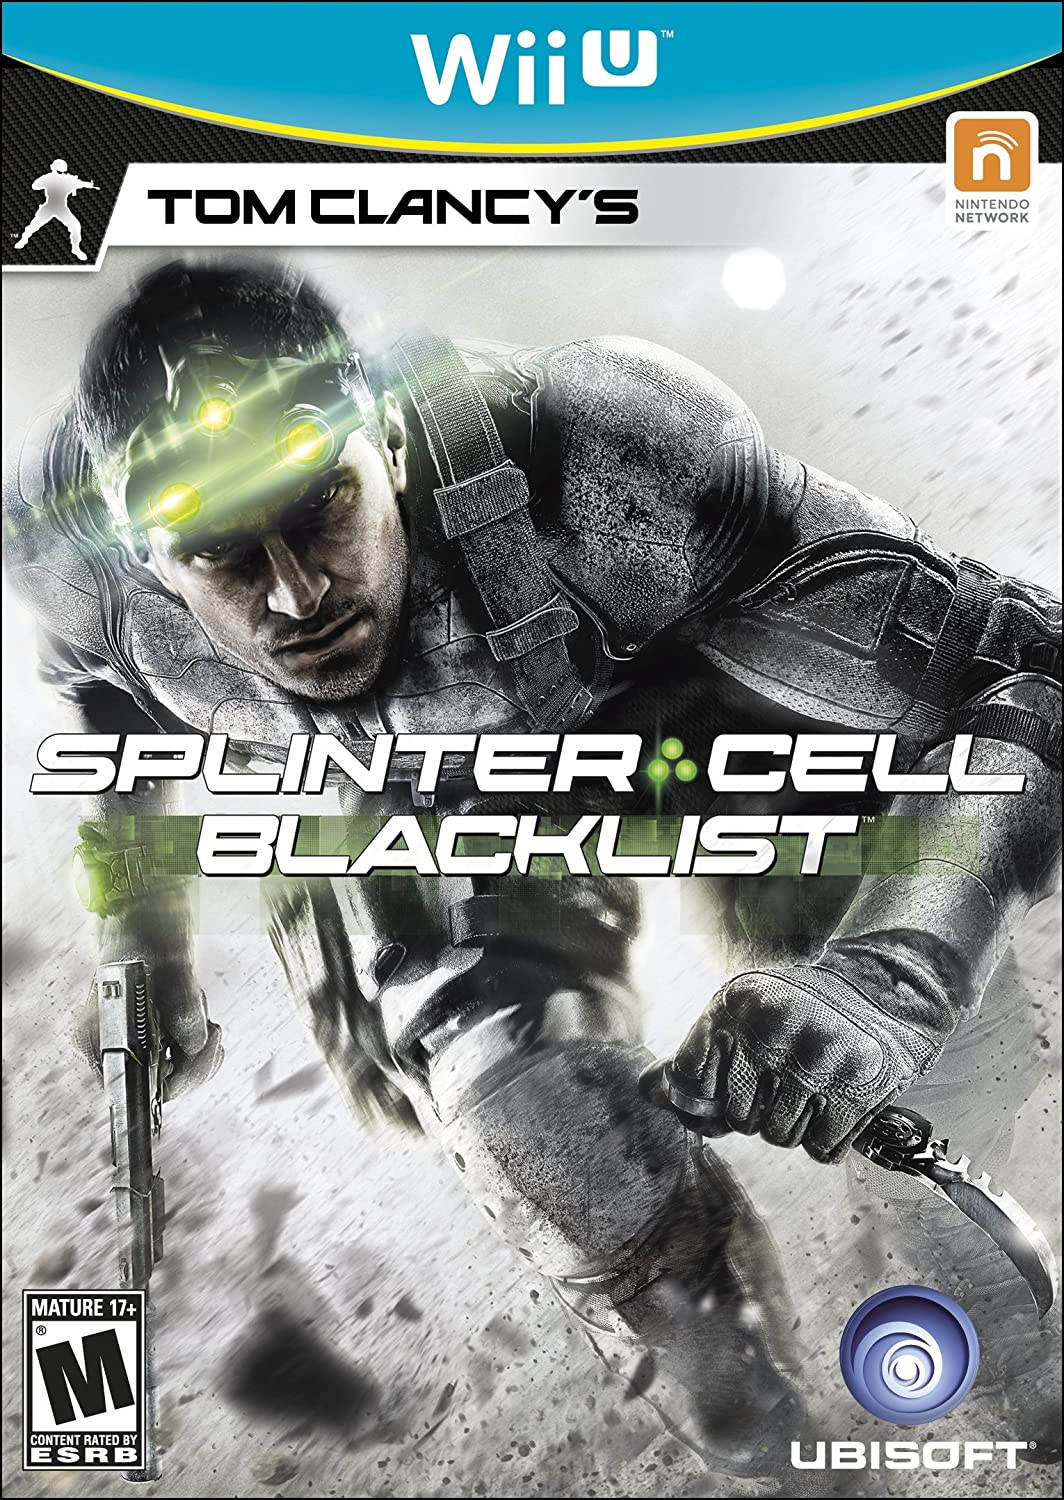 Tom Clancy's Splinter Cell Blacklist (Nintendo Wii U)